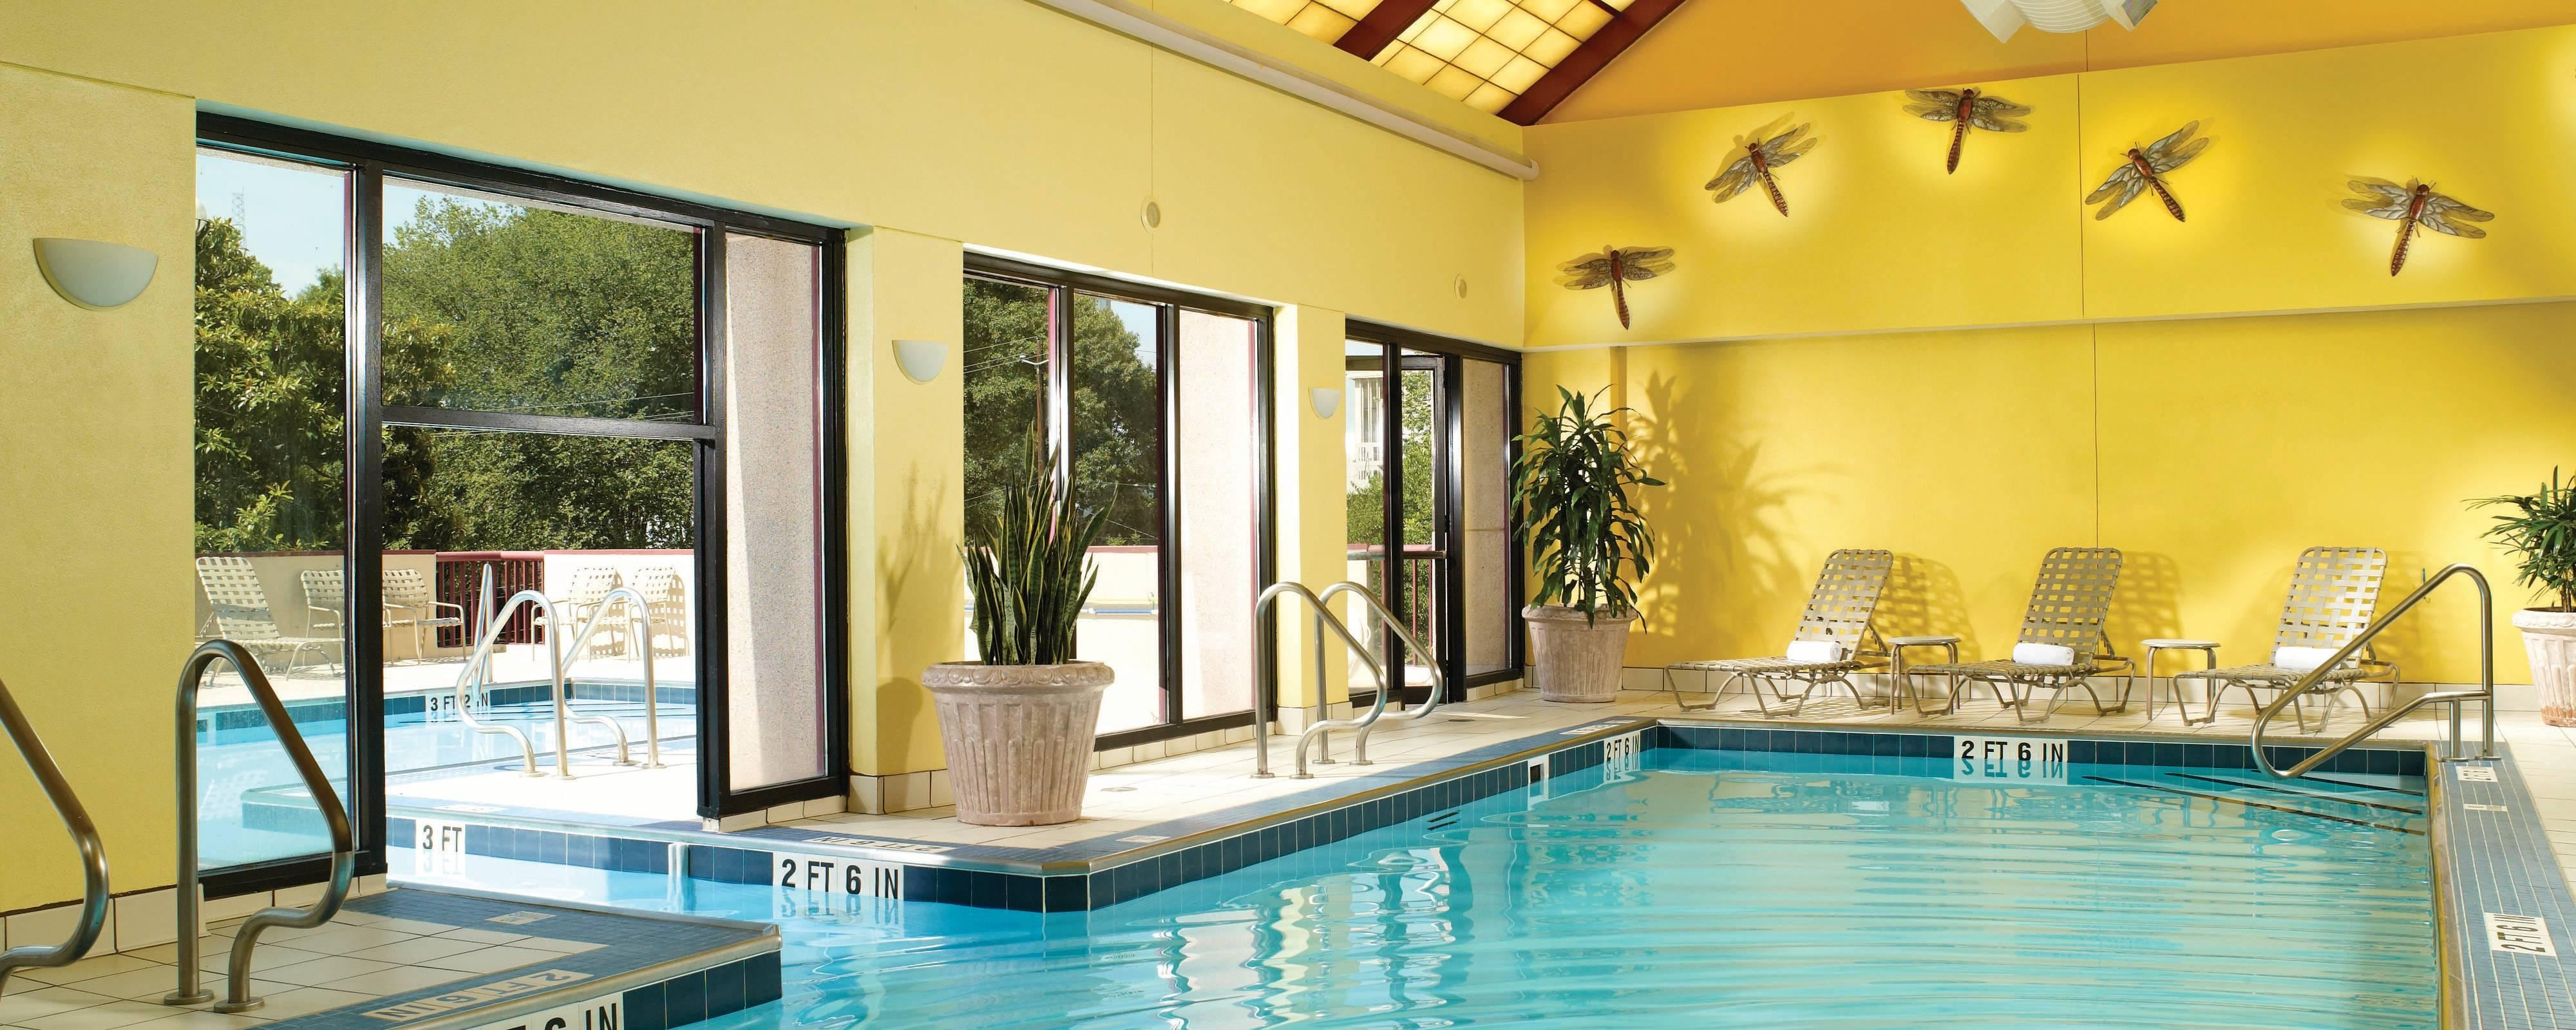 Indoor Outdoor swimming pool